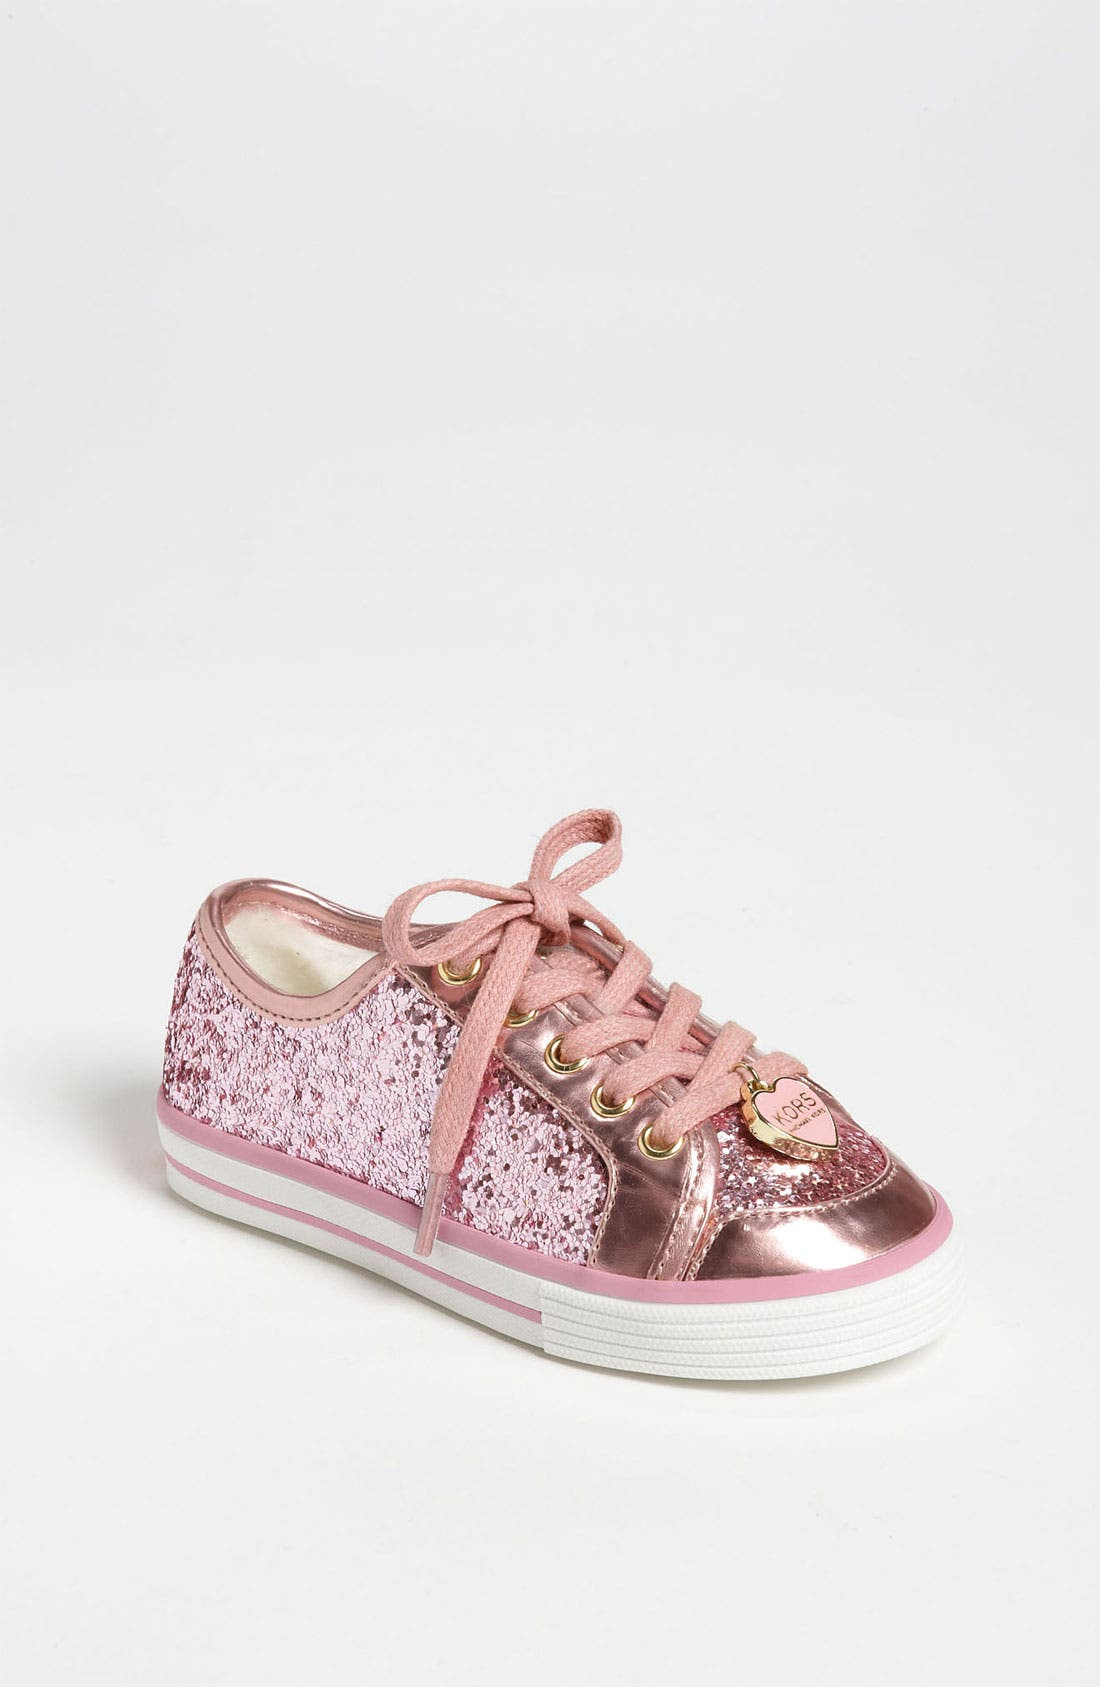 Alternate Image 1 Selected - KORS Michael Kors 'Lacie' Sneaker (Toddler)